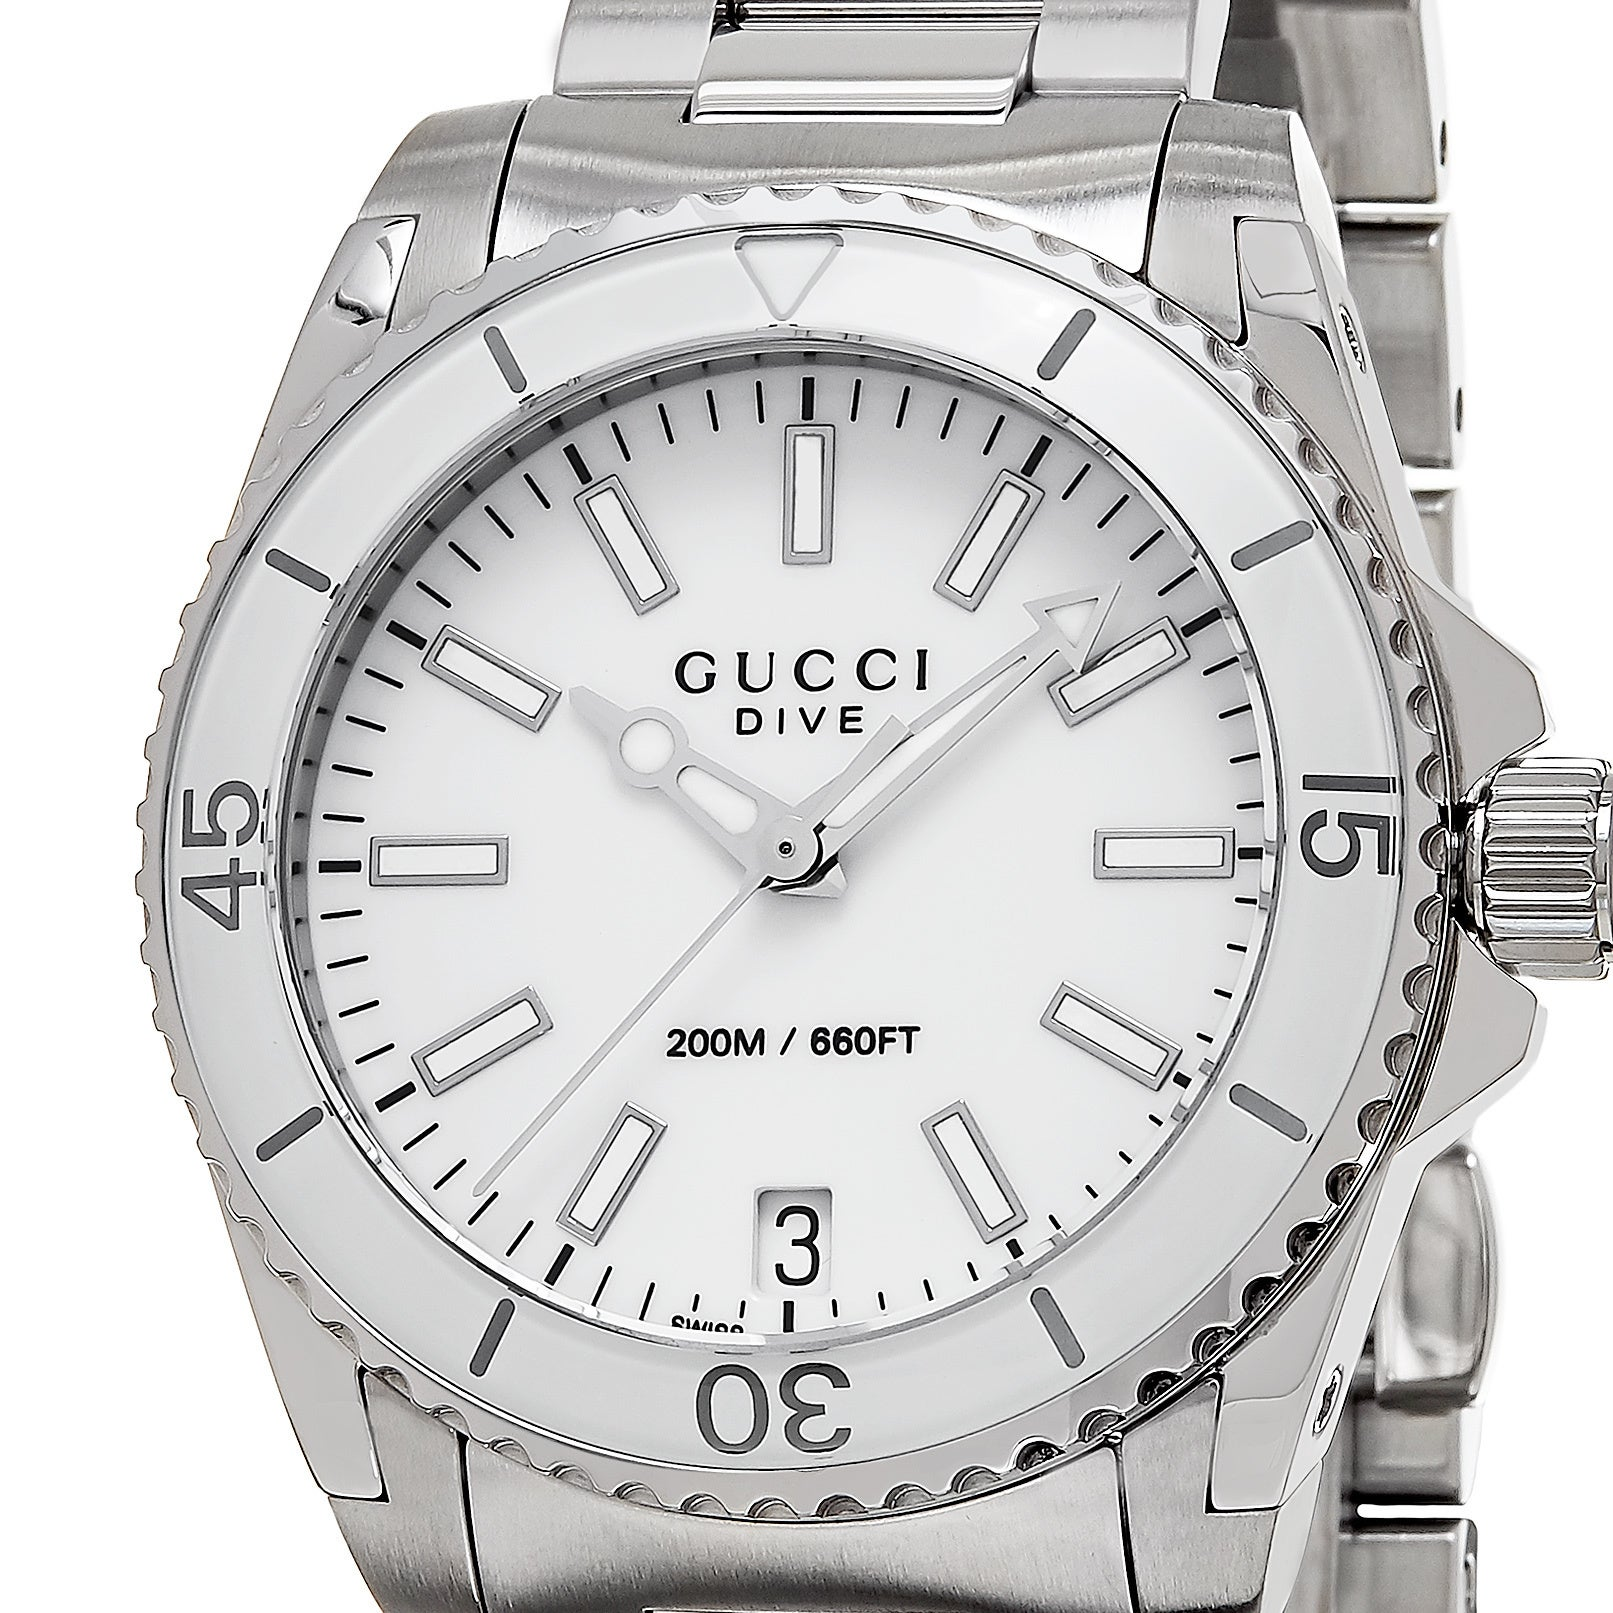 d9650c68924 Shop Gucci Women s YA136402  Dive  Stainless Steel Watch - Free Shipping  Today - Overstock - 10329697